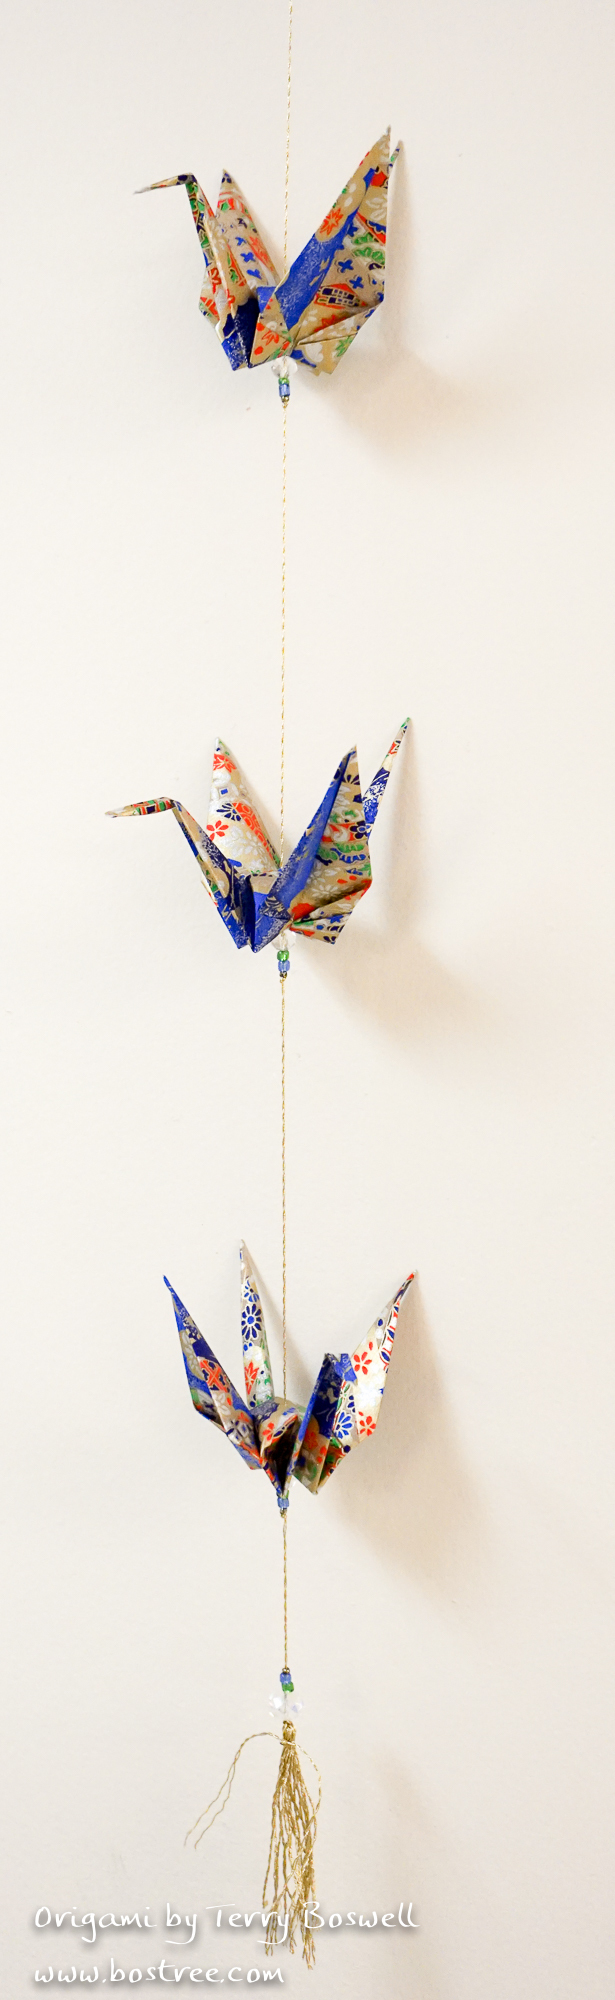 Three Crane Origami Mobile - Blue, Gold, Red OR00027